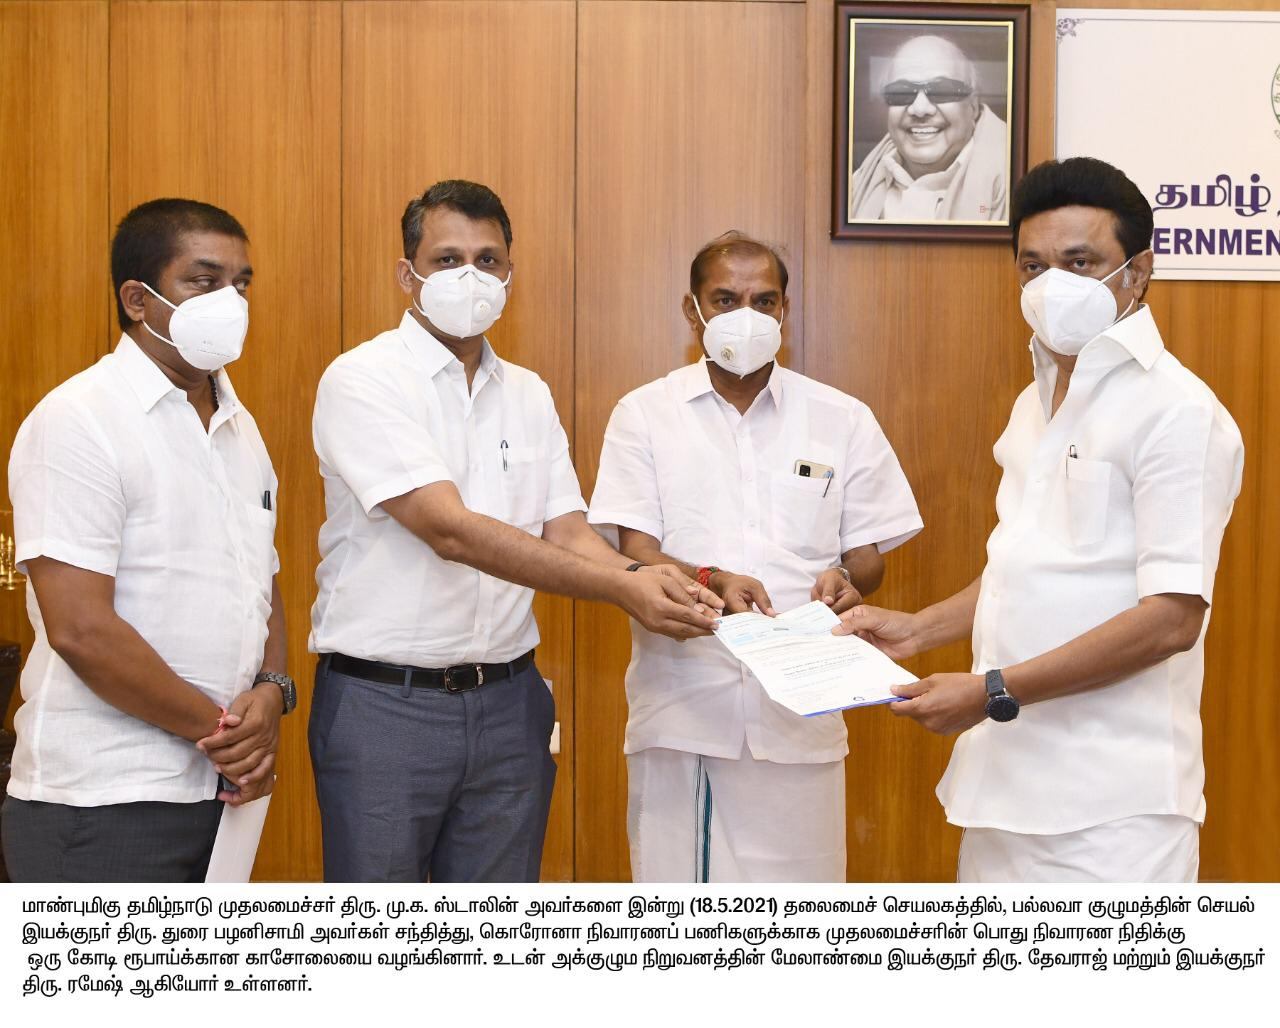 Pallavaa Group / VSM Weaves Contributes To COVID-19 Relief Fund